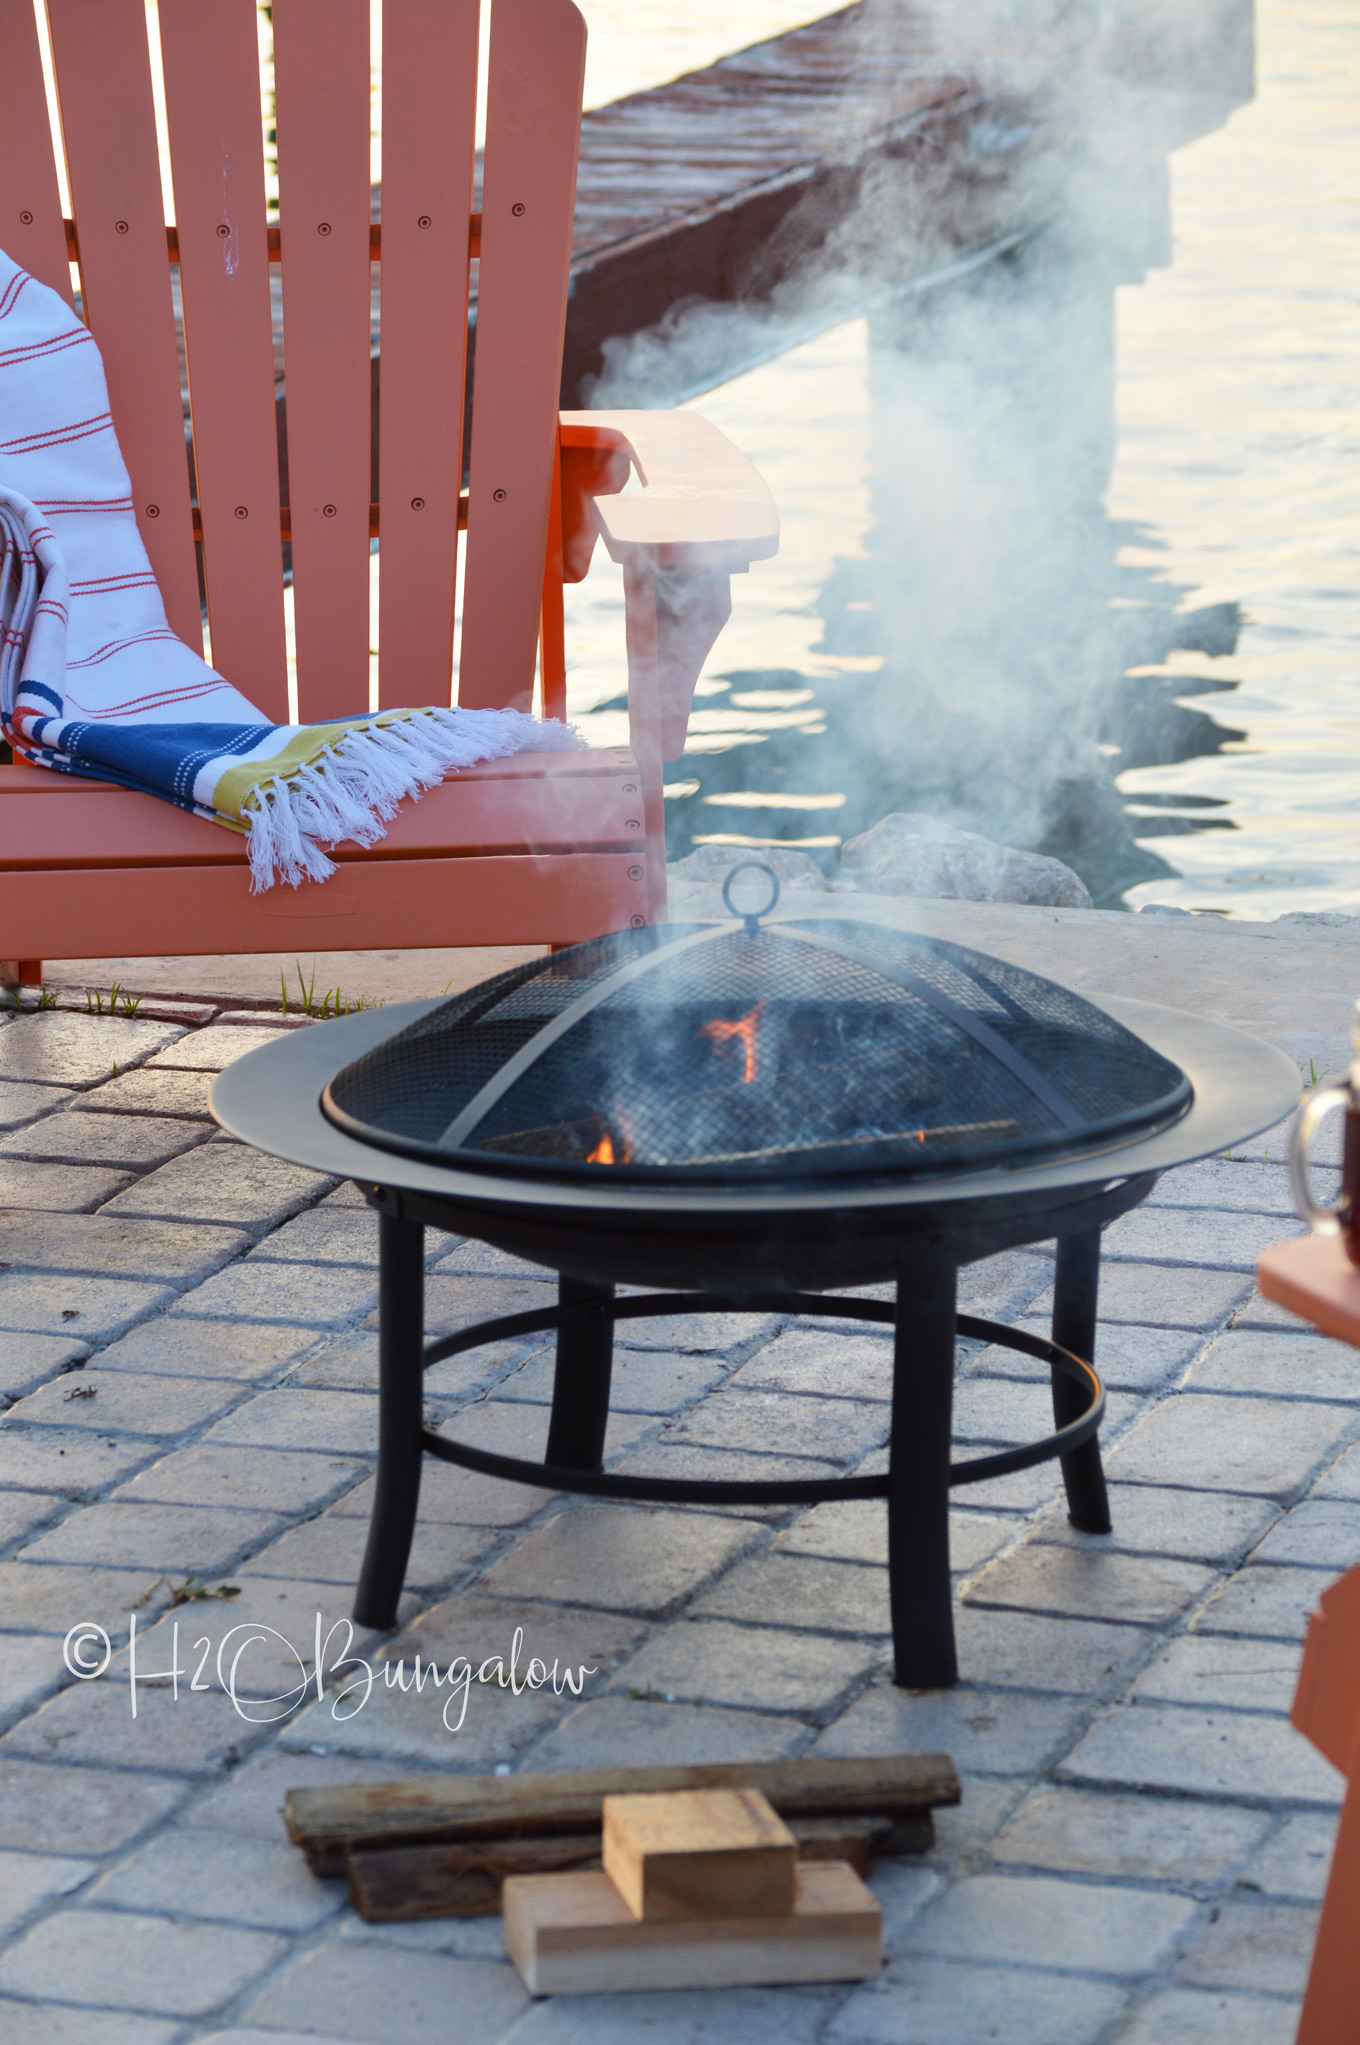 Follow these fire pit tips and and I'll show you how to start a fire in a fire pit quicker, safer and more efficiently, every-time. You may be surprised that I don't start with a tee-pee shaped fire! These fire pit tips and tricks will get your summer fire pit season off to a good start, especially if relaxing by a crackling fire pit is on your agenda for this summer.